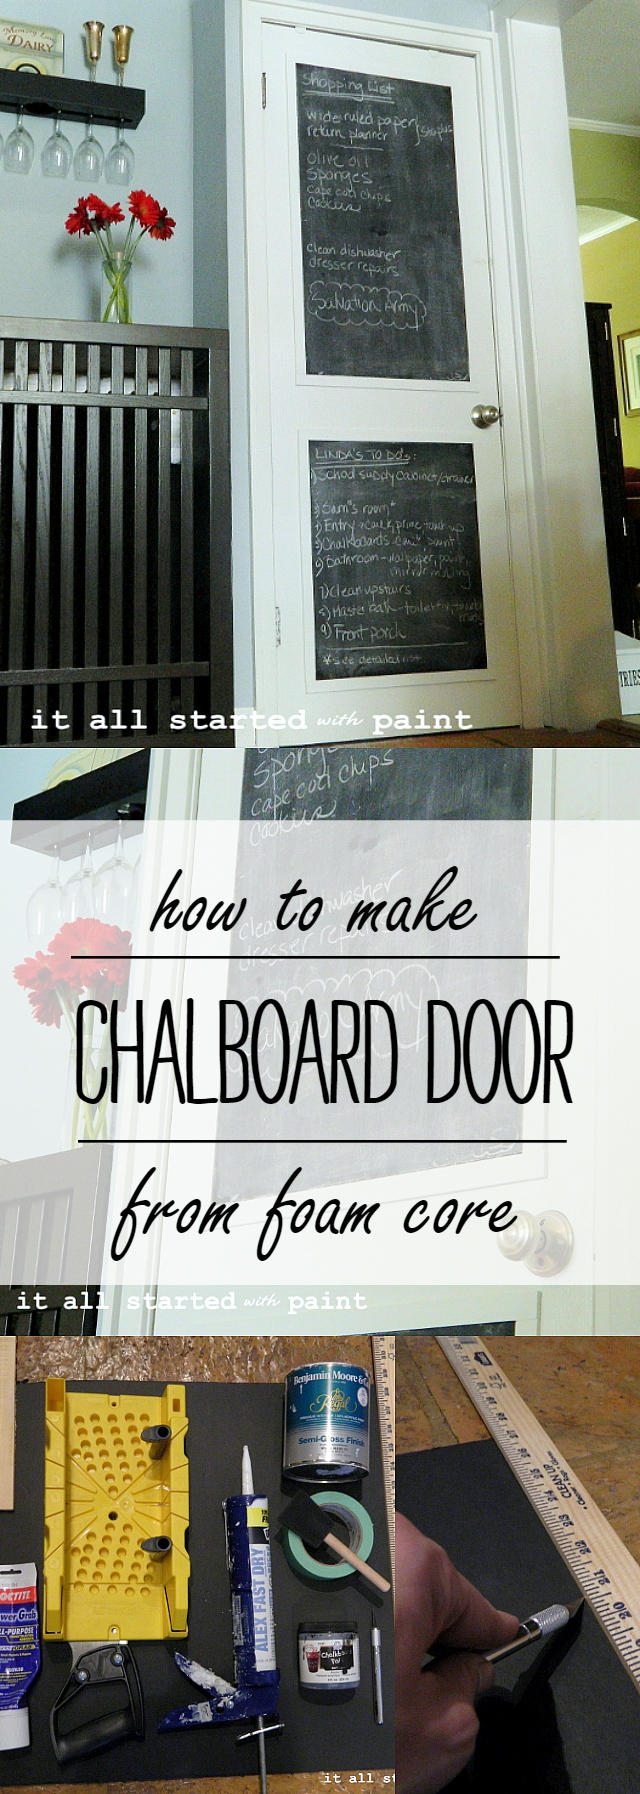 Chalkboard Door DIY From Foam Core Board and Chalkboard Paint